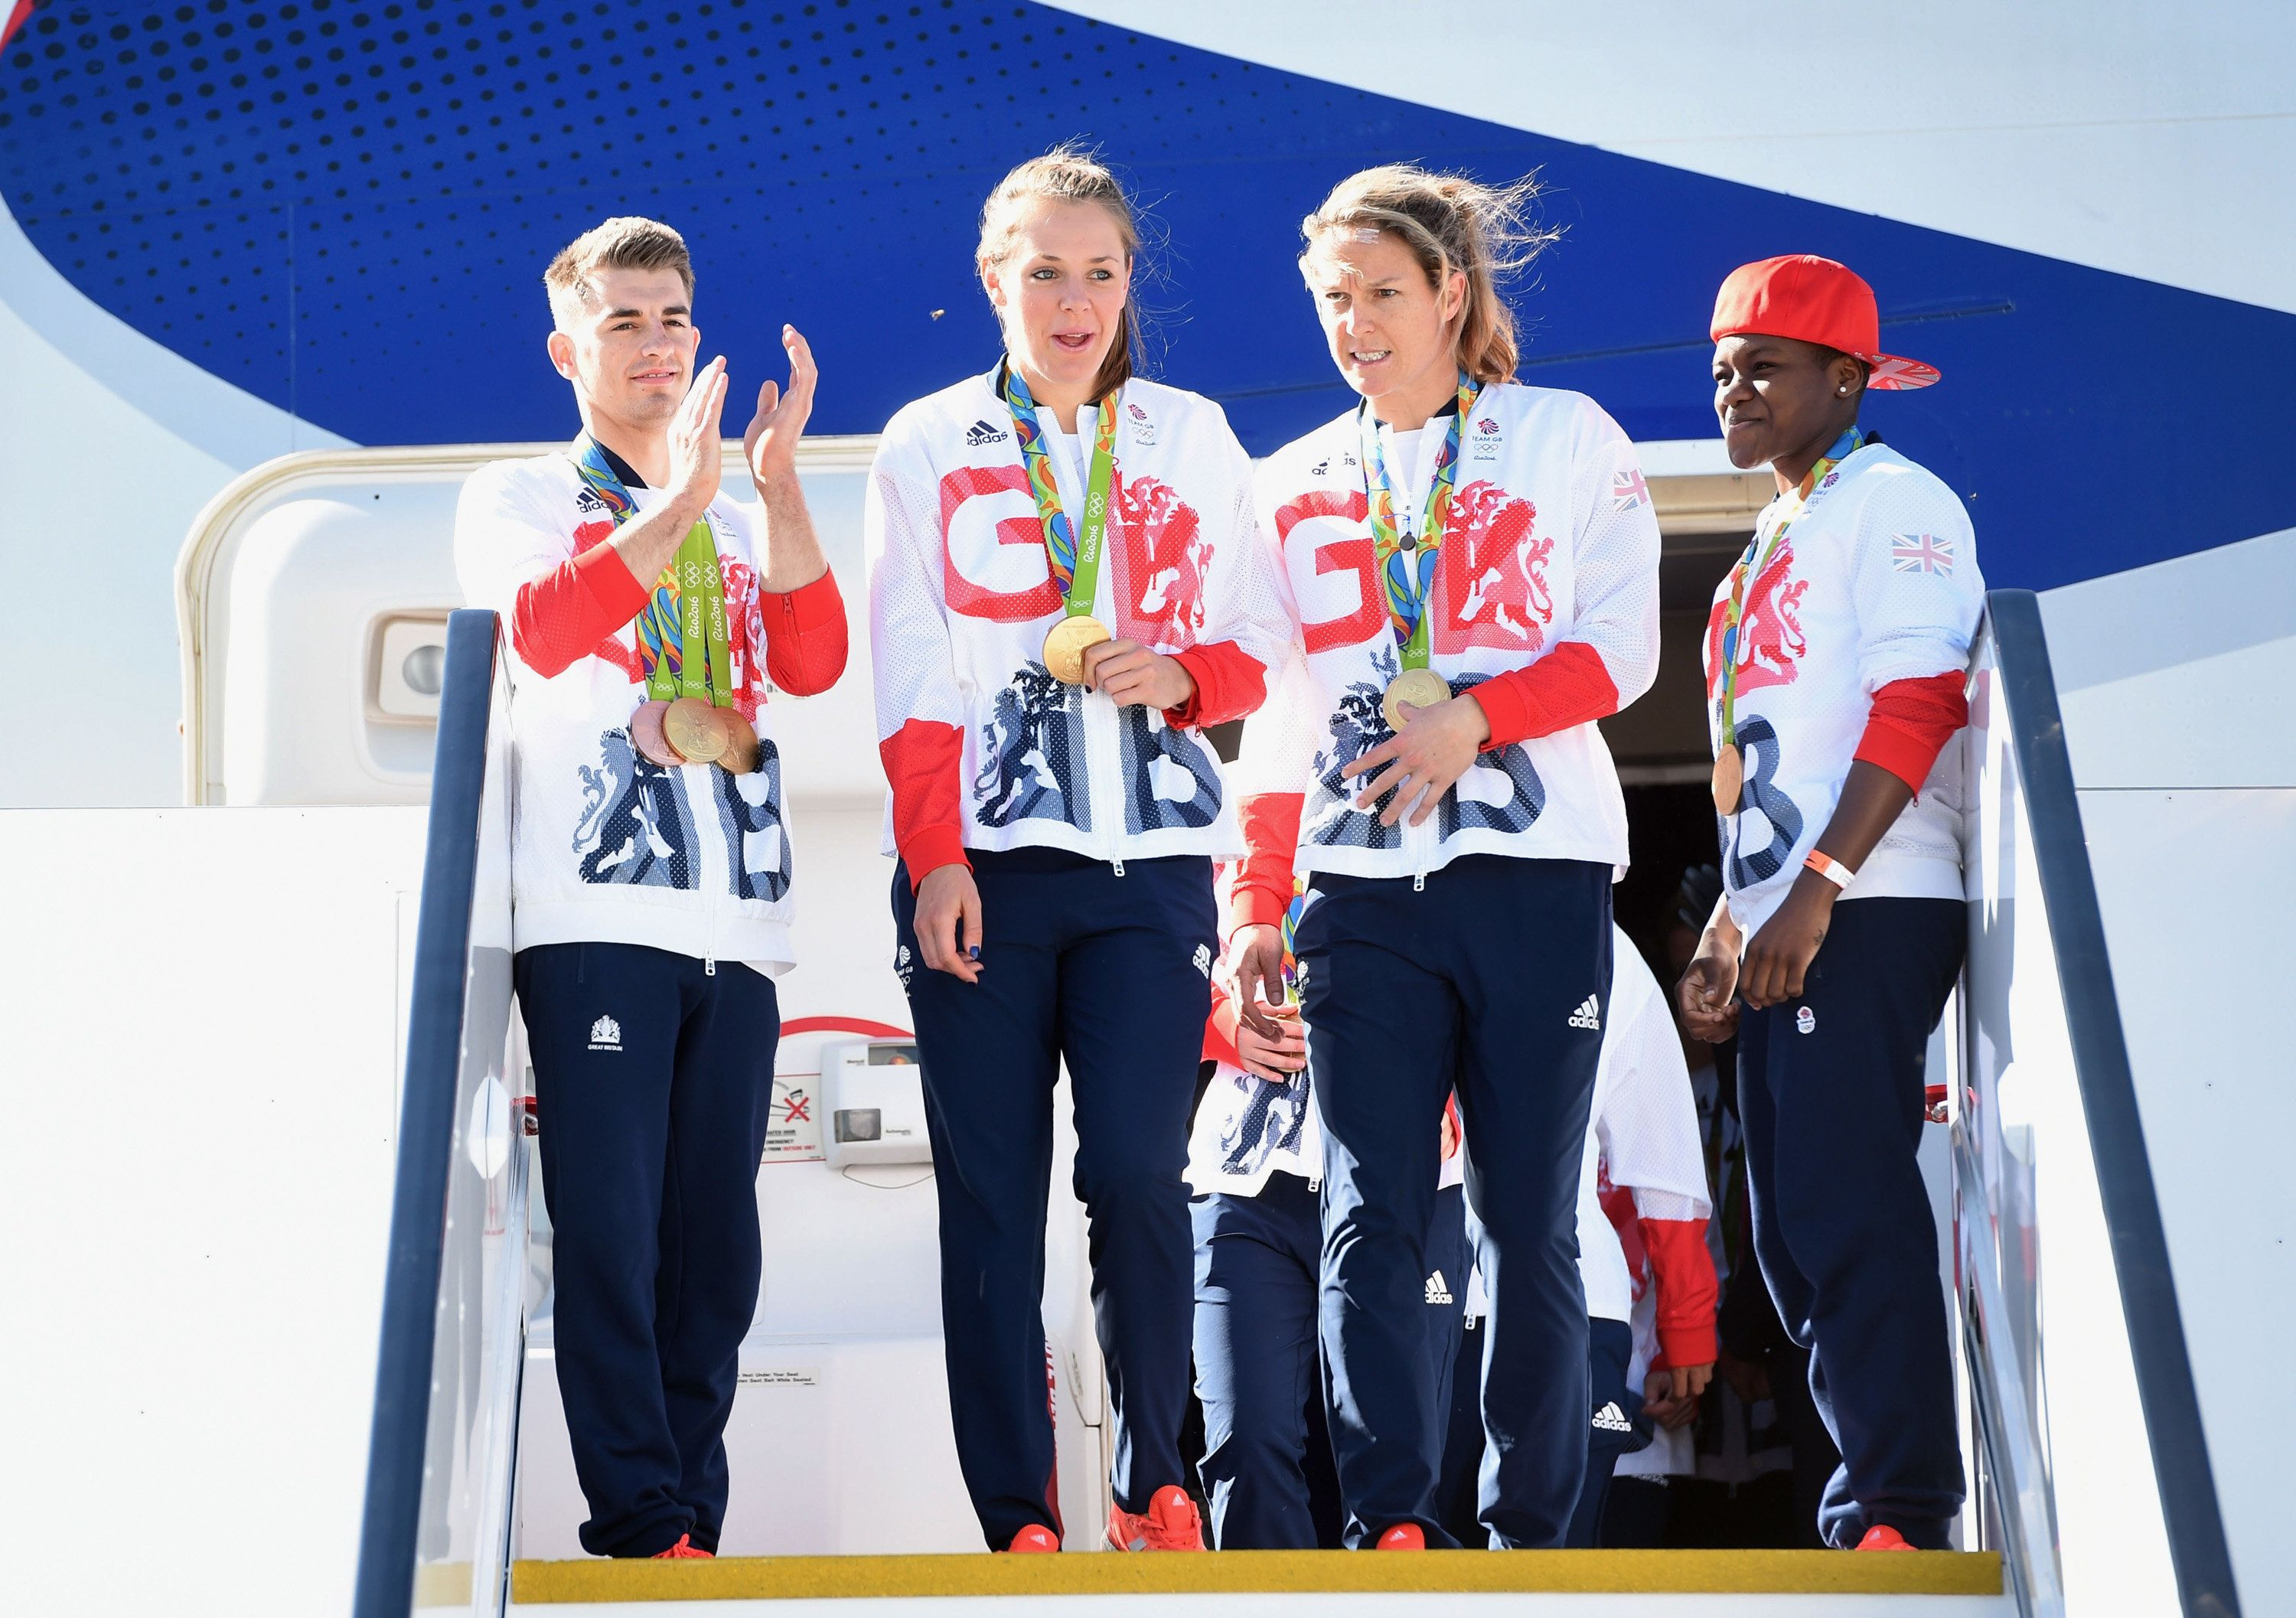 LONDON, ENGLAND - AUGUST 23:  Team GB Gymnast and gold medallist Max Whitlock (L) and gold medallist and boxer Nicola Adams (R) look on as members of the women's hockey team leave the plane after arriving home at Heathrow Airport on August 23, 2016 in London, England. The 2016 British Olympic Team arrived back to Heathrow on a British Airways flight today having finished second in the medal table at the Rio Olympics. They totalled 67 medals including 27 Gold and 23 Silver in Great Britain's strongest Olympic performance in over a century.  (Photo by Stuart C. Wilson/Getty Images)